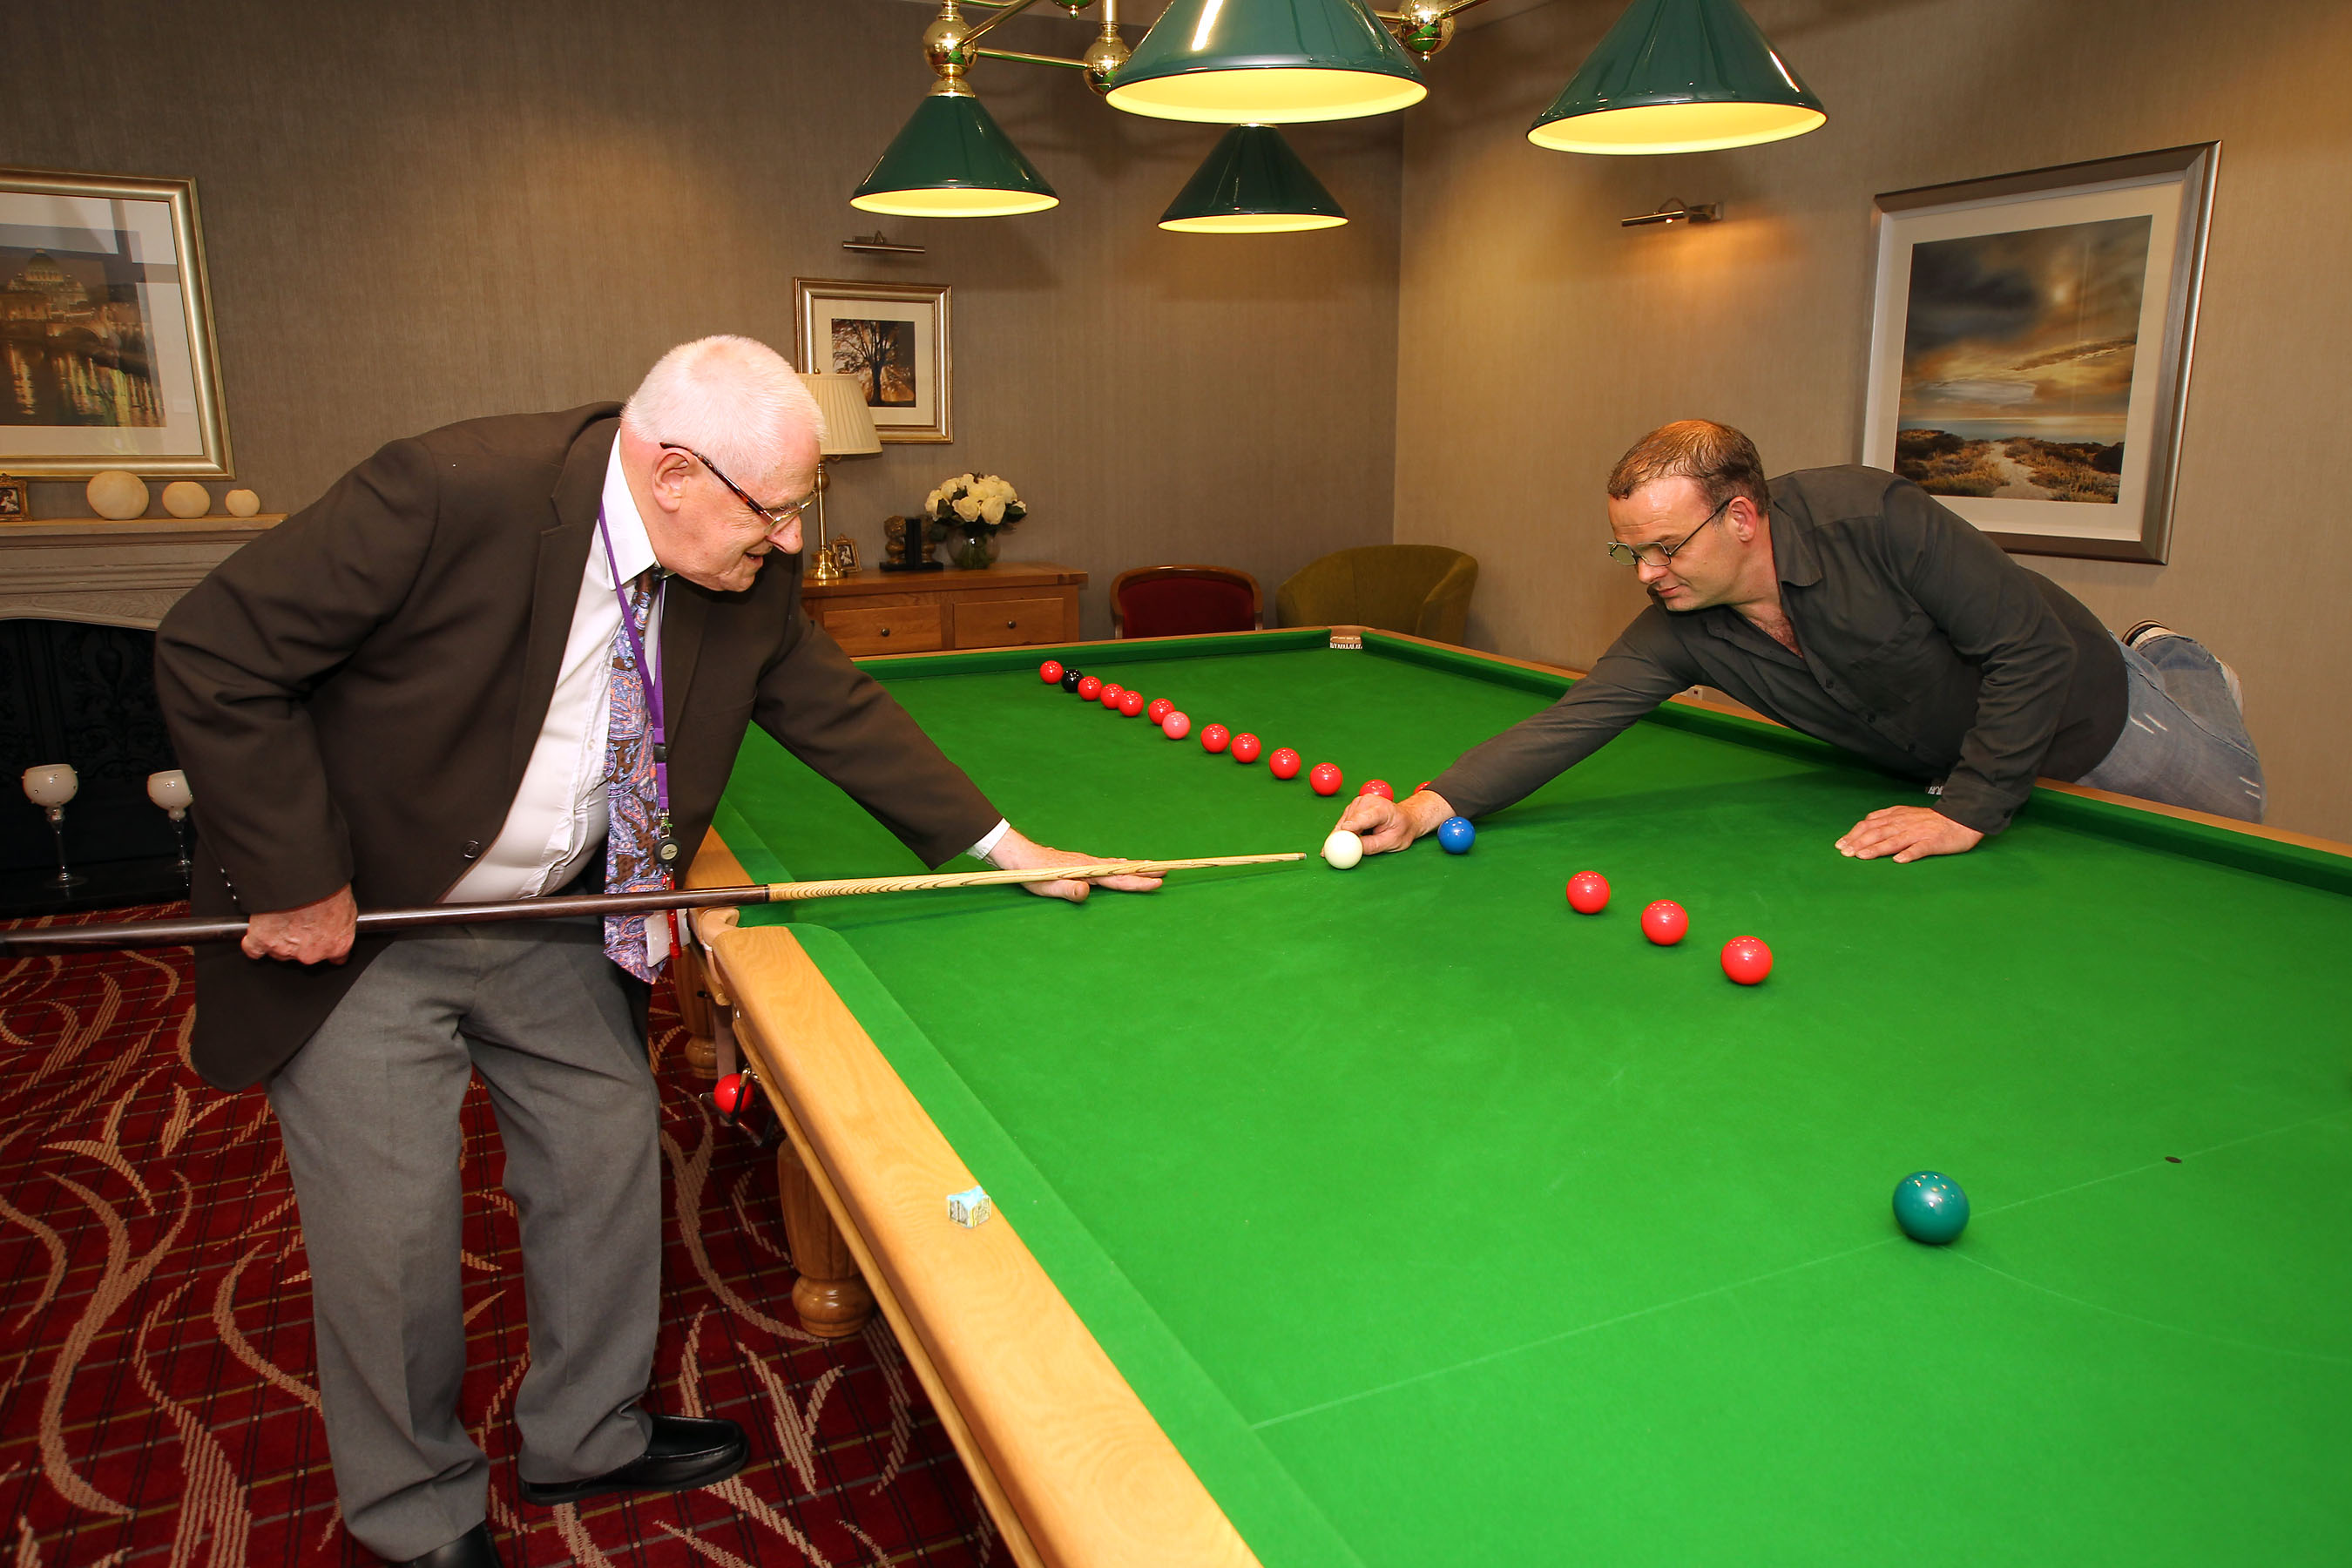 Enjoying a game of snooker